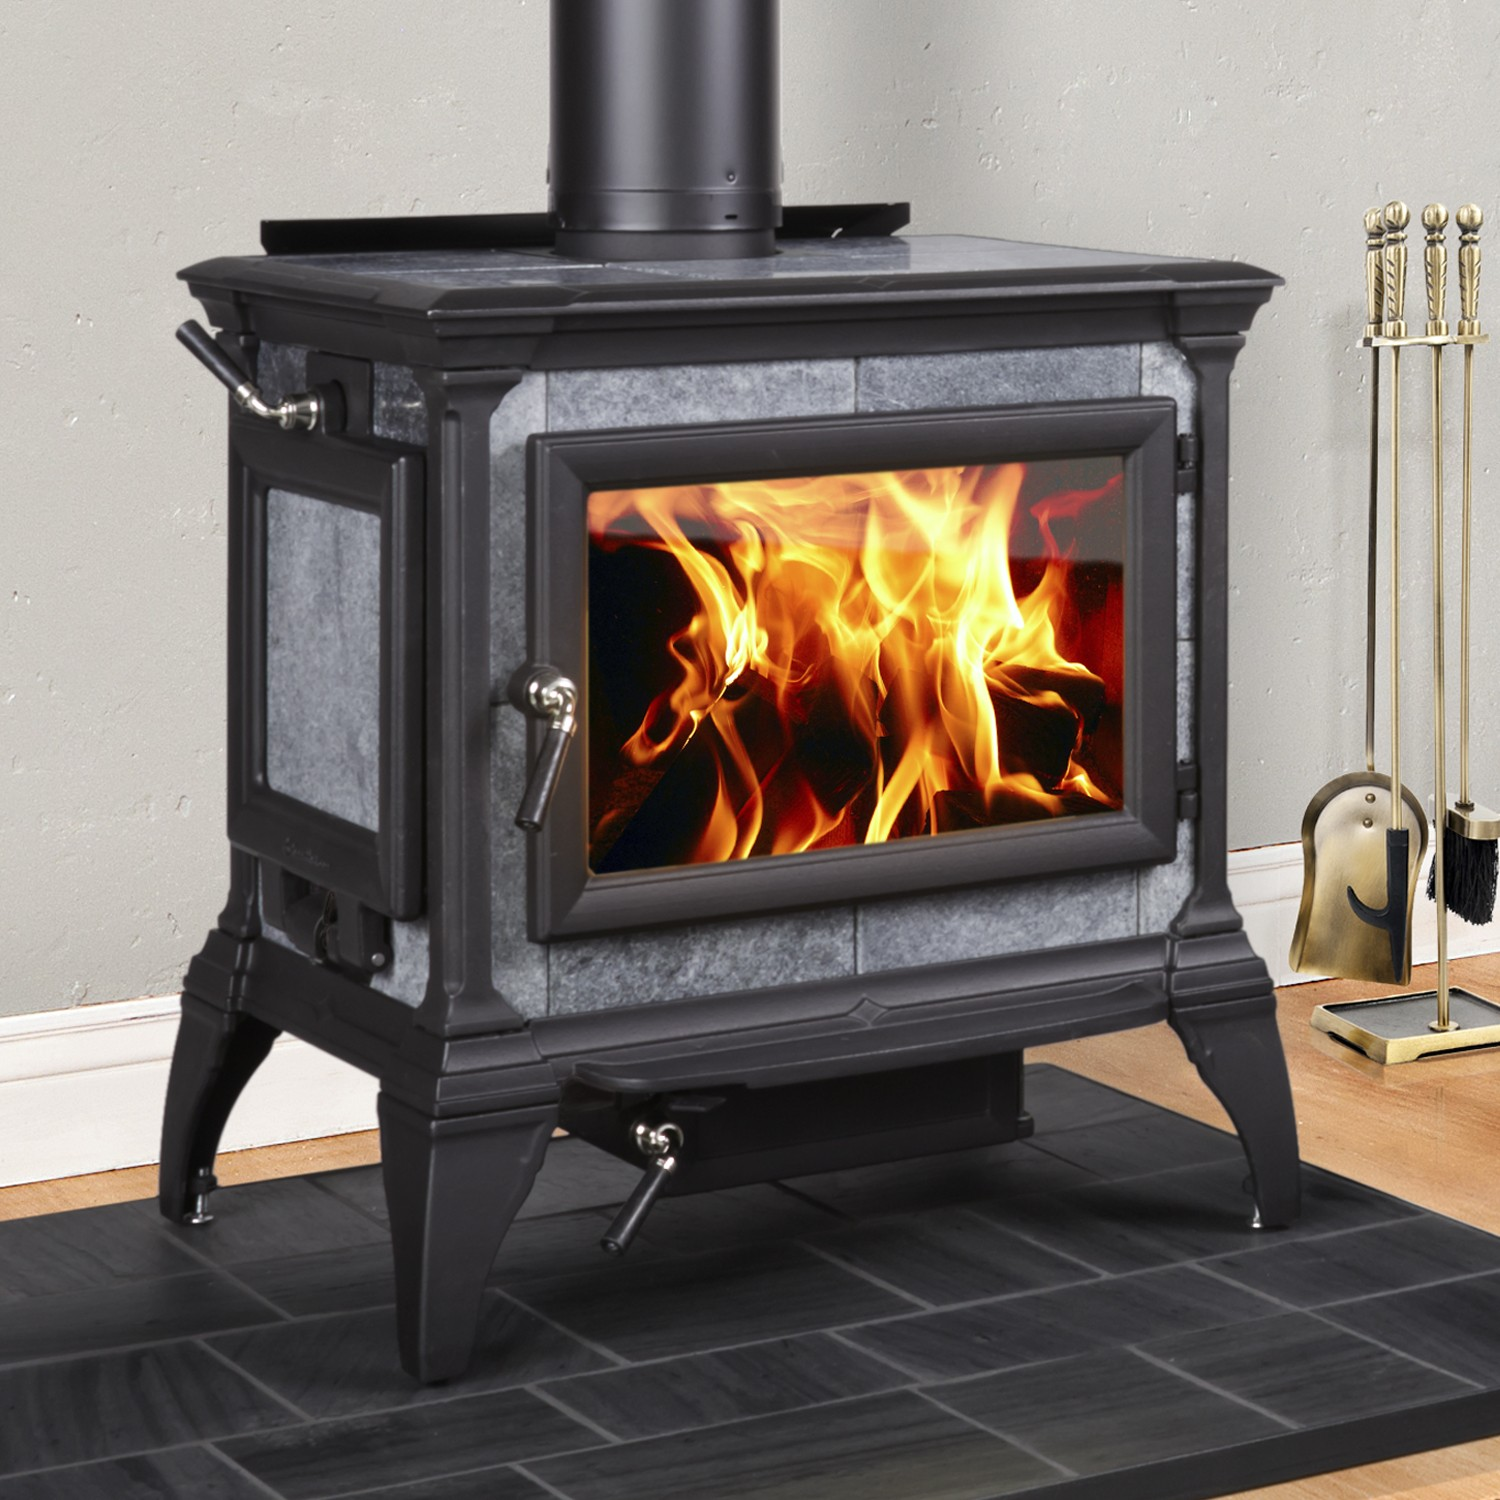 Hearthstone Heritage 8022 Soapstone Wood Stove Evergreen